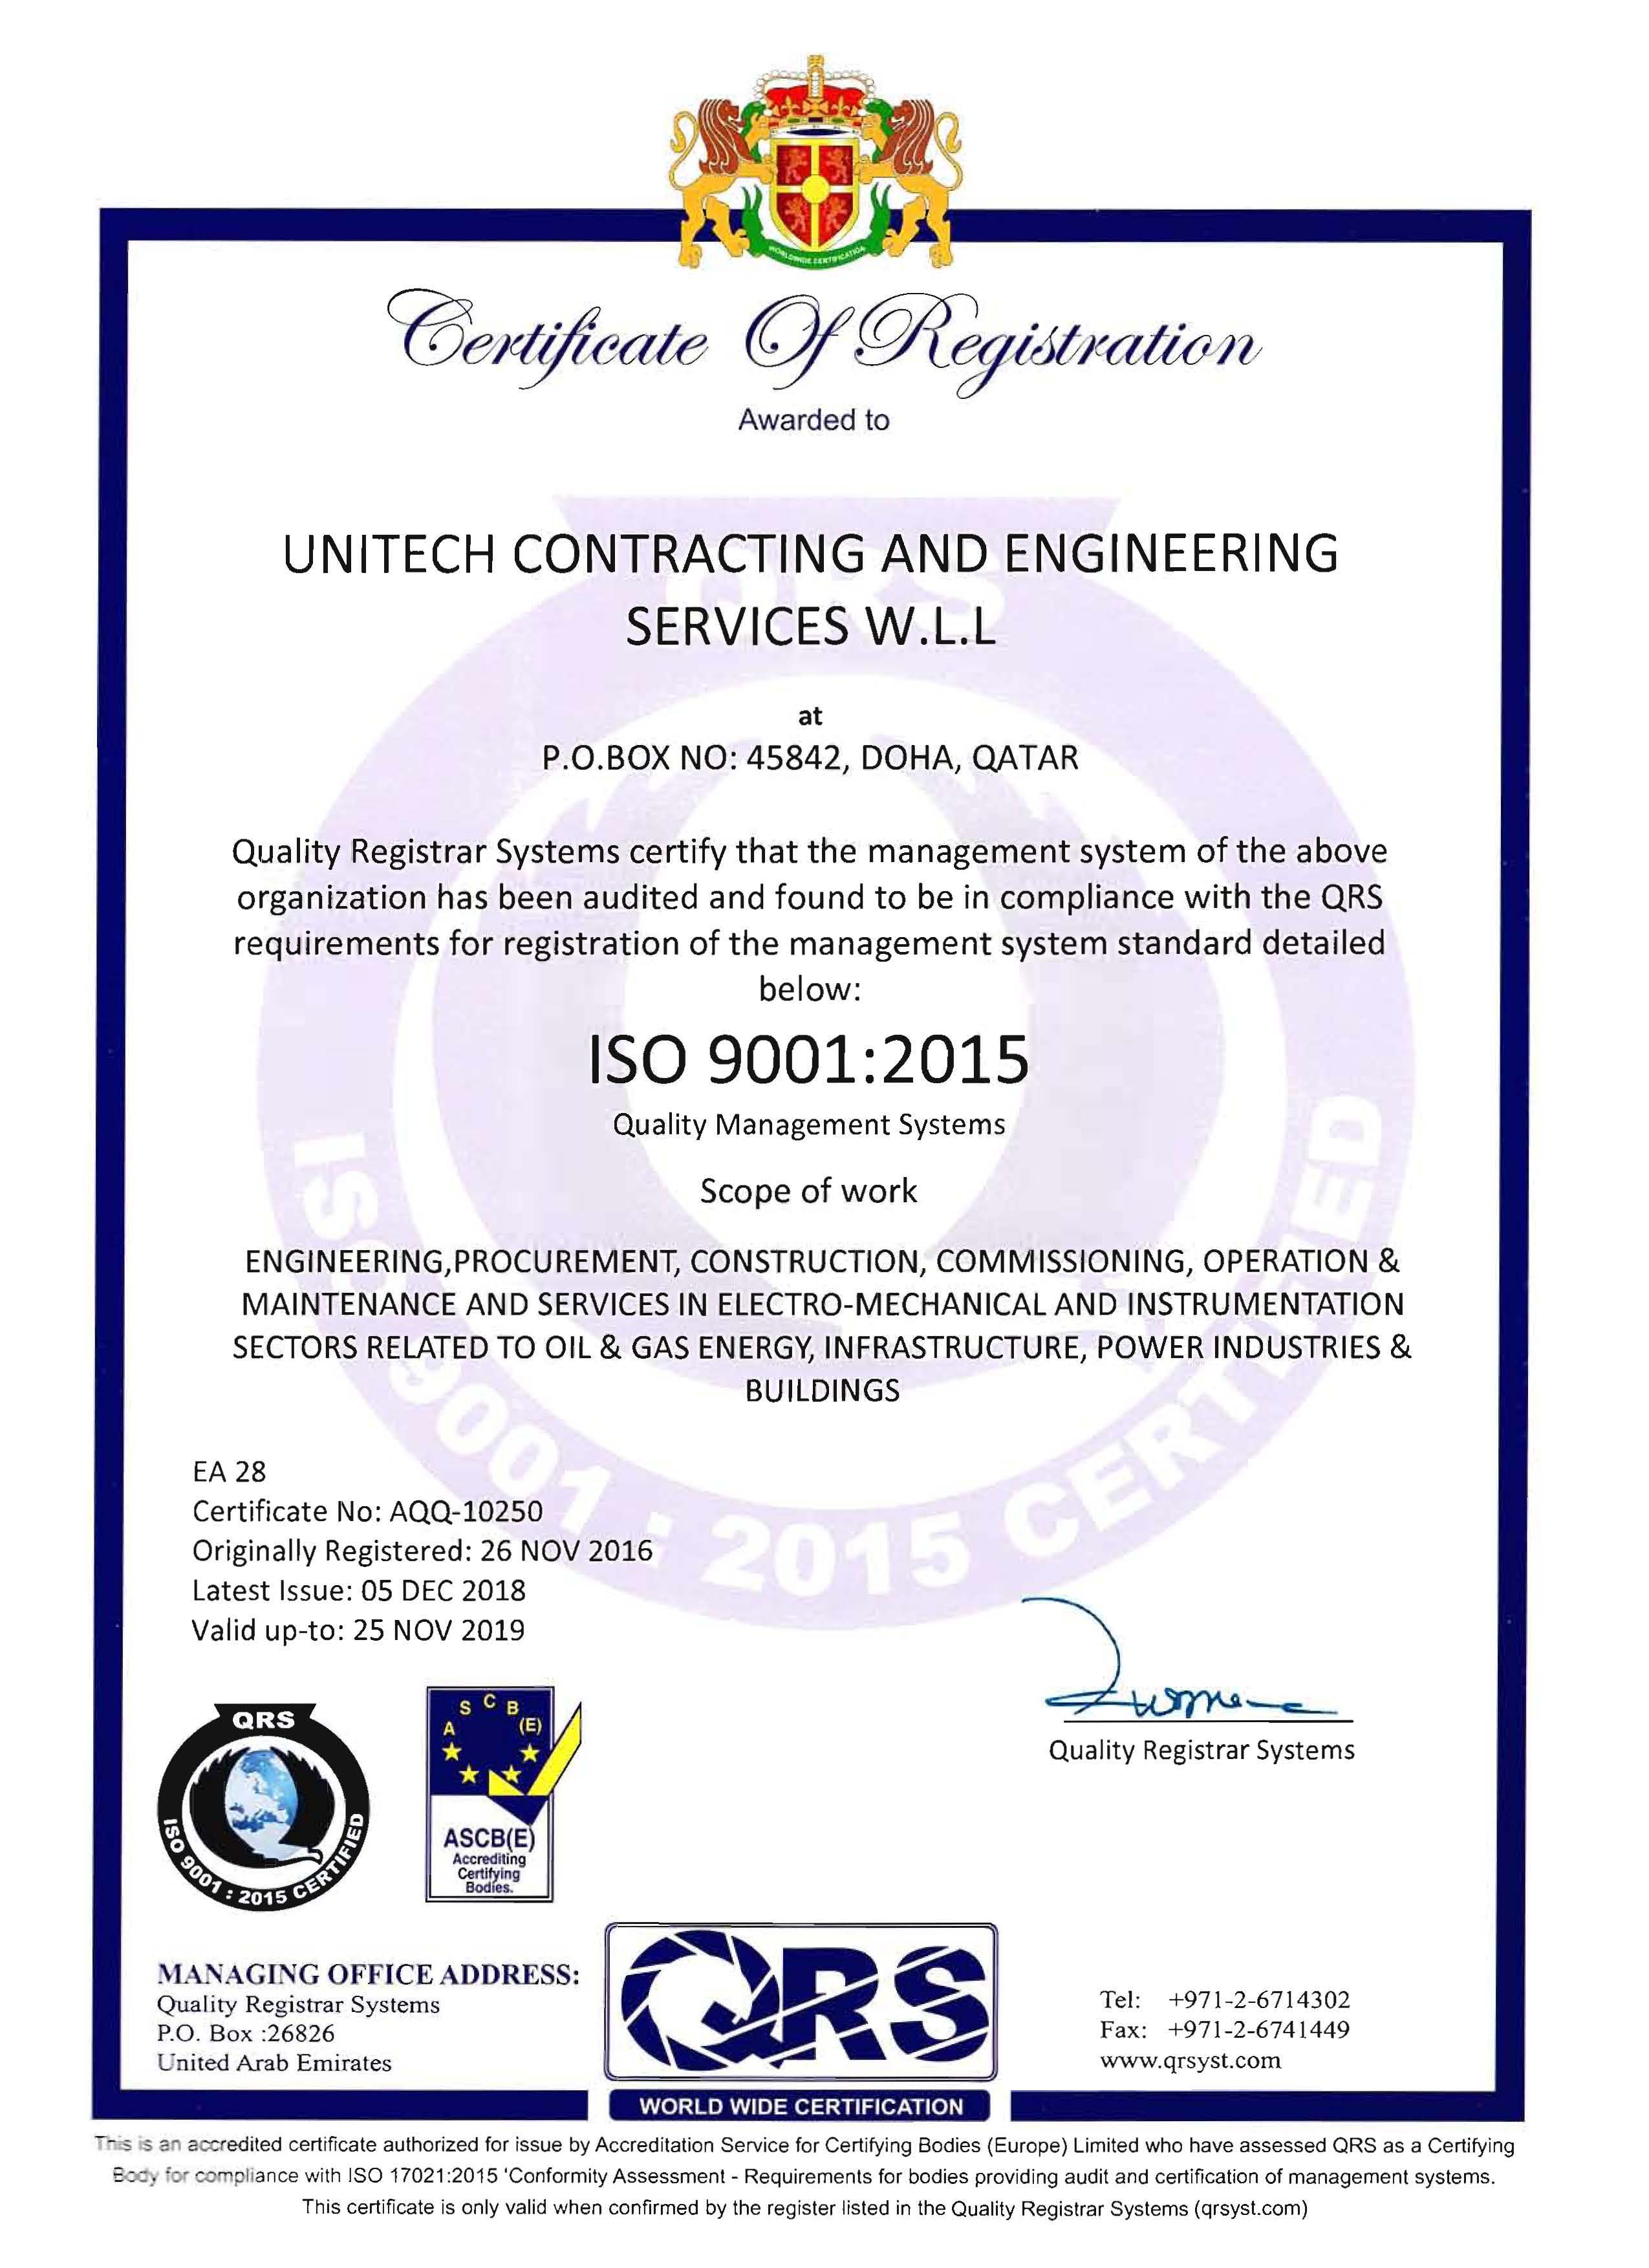 UNITECH - Contracting & Engineering Services W L